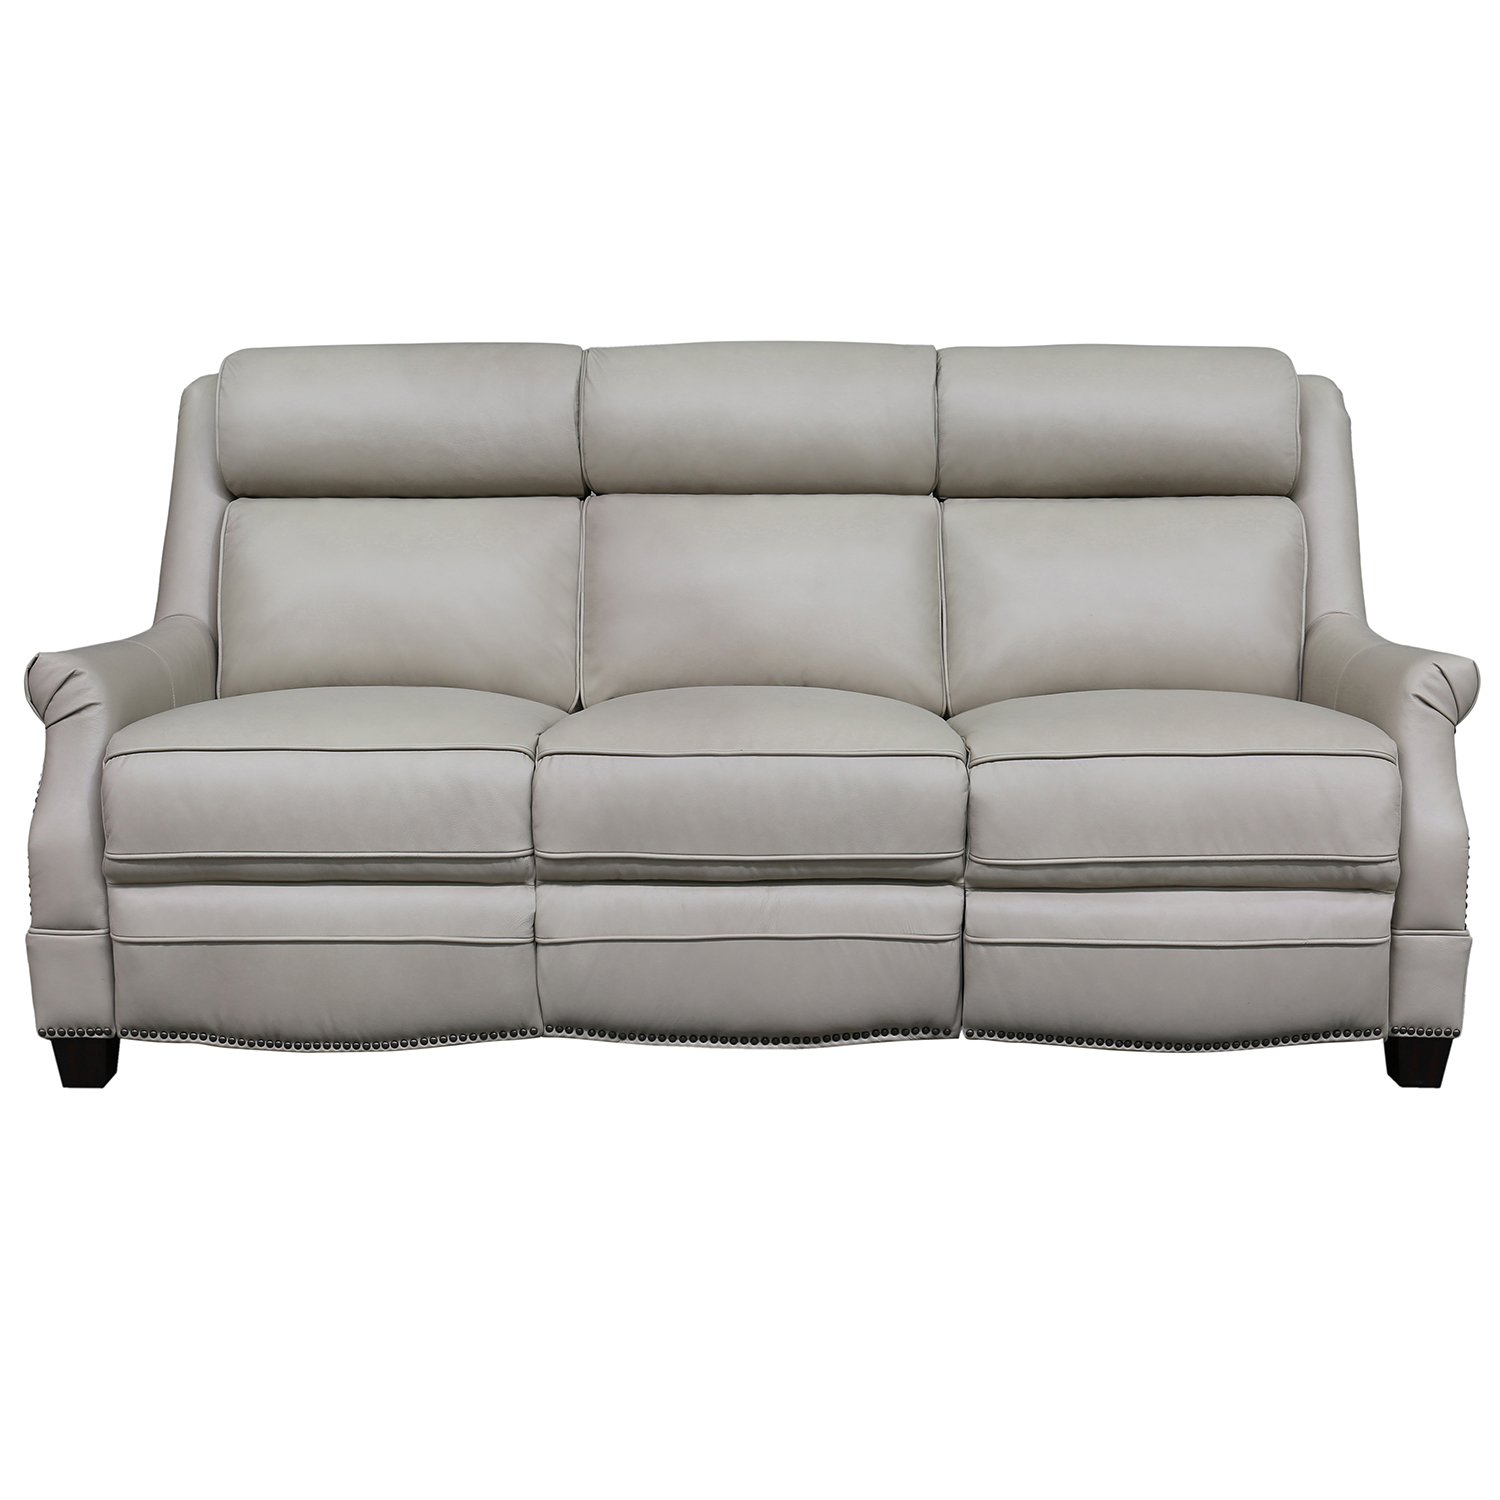 Warrendale Power Reclining Sofa In Shoreham Cream Leather By Barcalounger